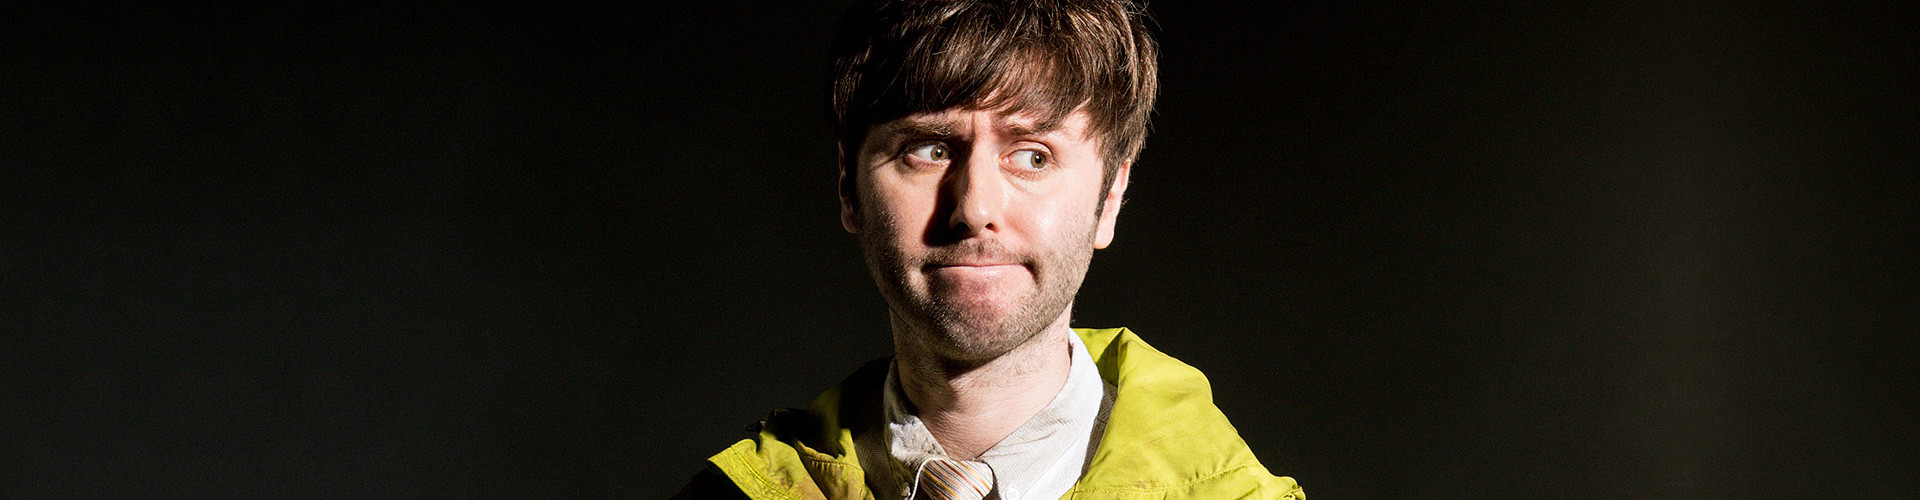 JamesBuckley-banner-1920x520.jpg